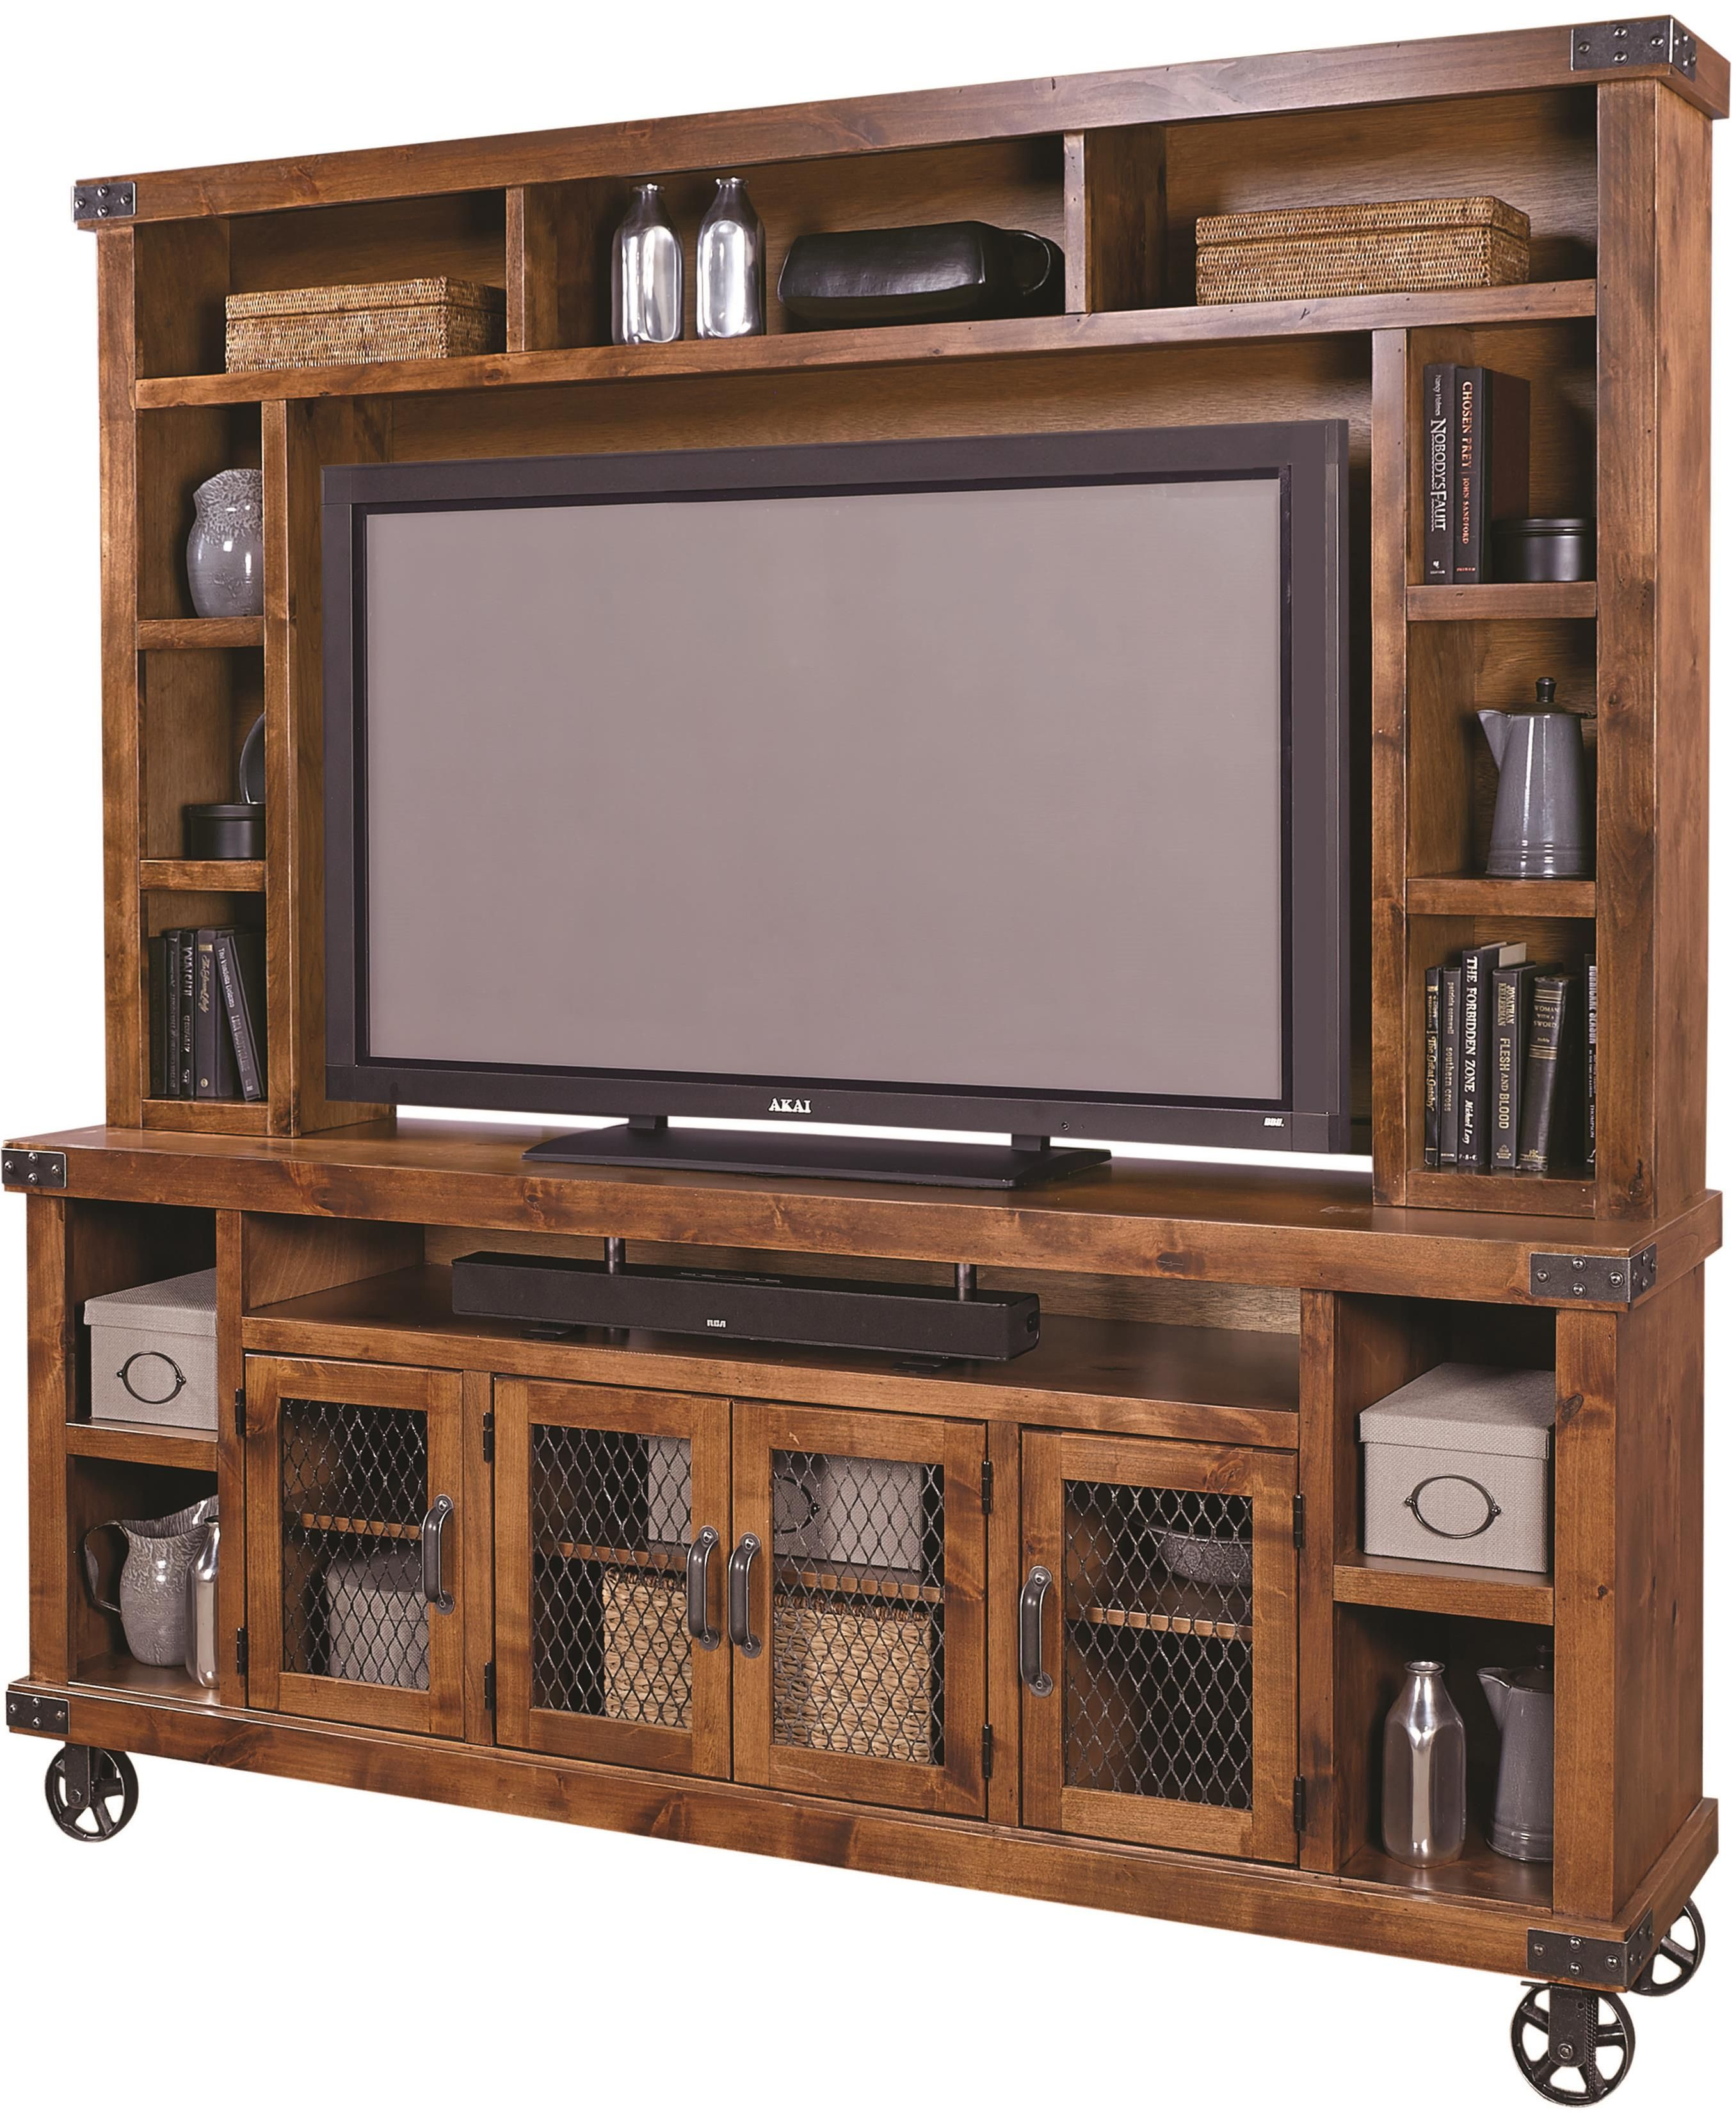 Rustic Industrial Style Entertainment Unit At Darvin Furniture.